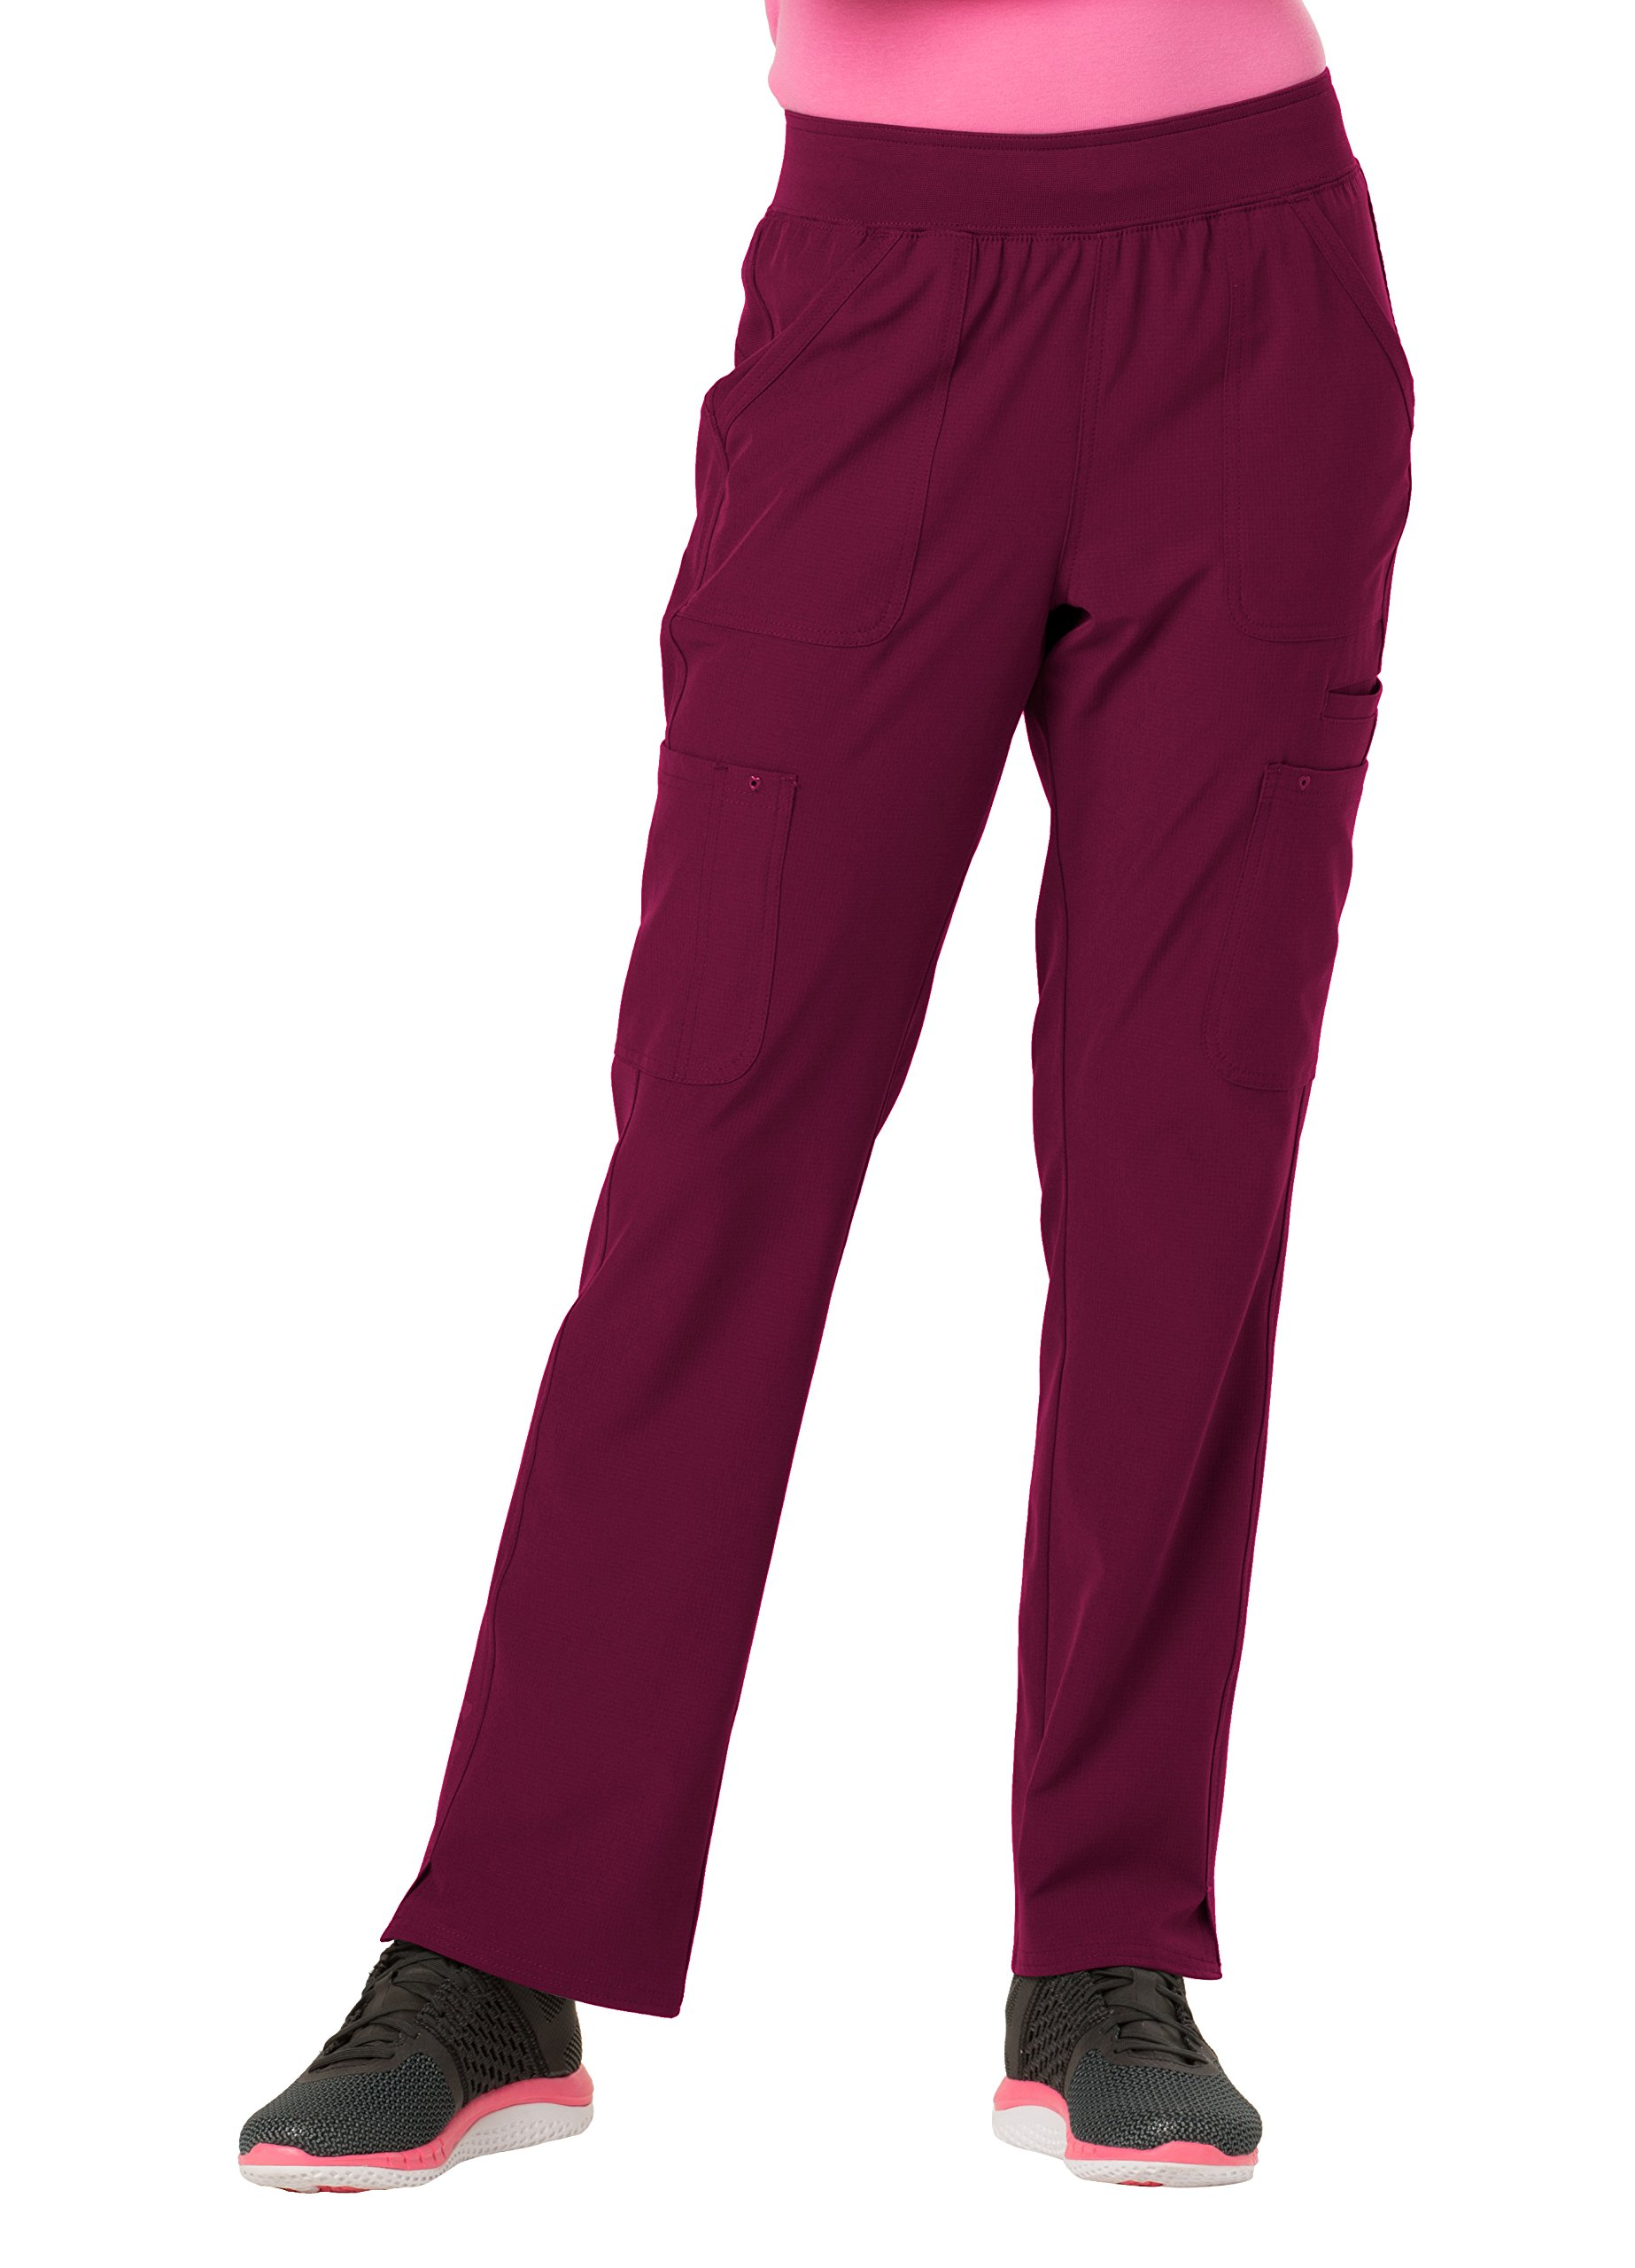 HeartSoul Women's HS020'' Drawn To Love Low Rise Pull-On Cargo Pant- Wine- Small Petite